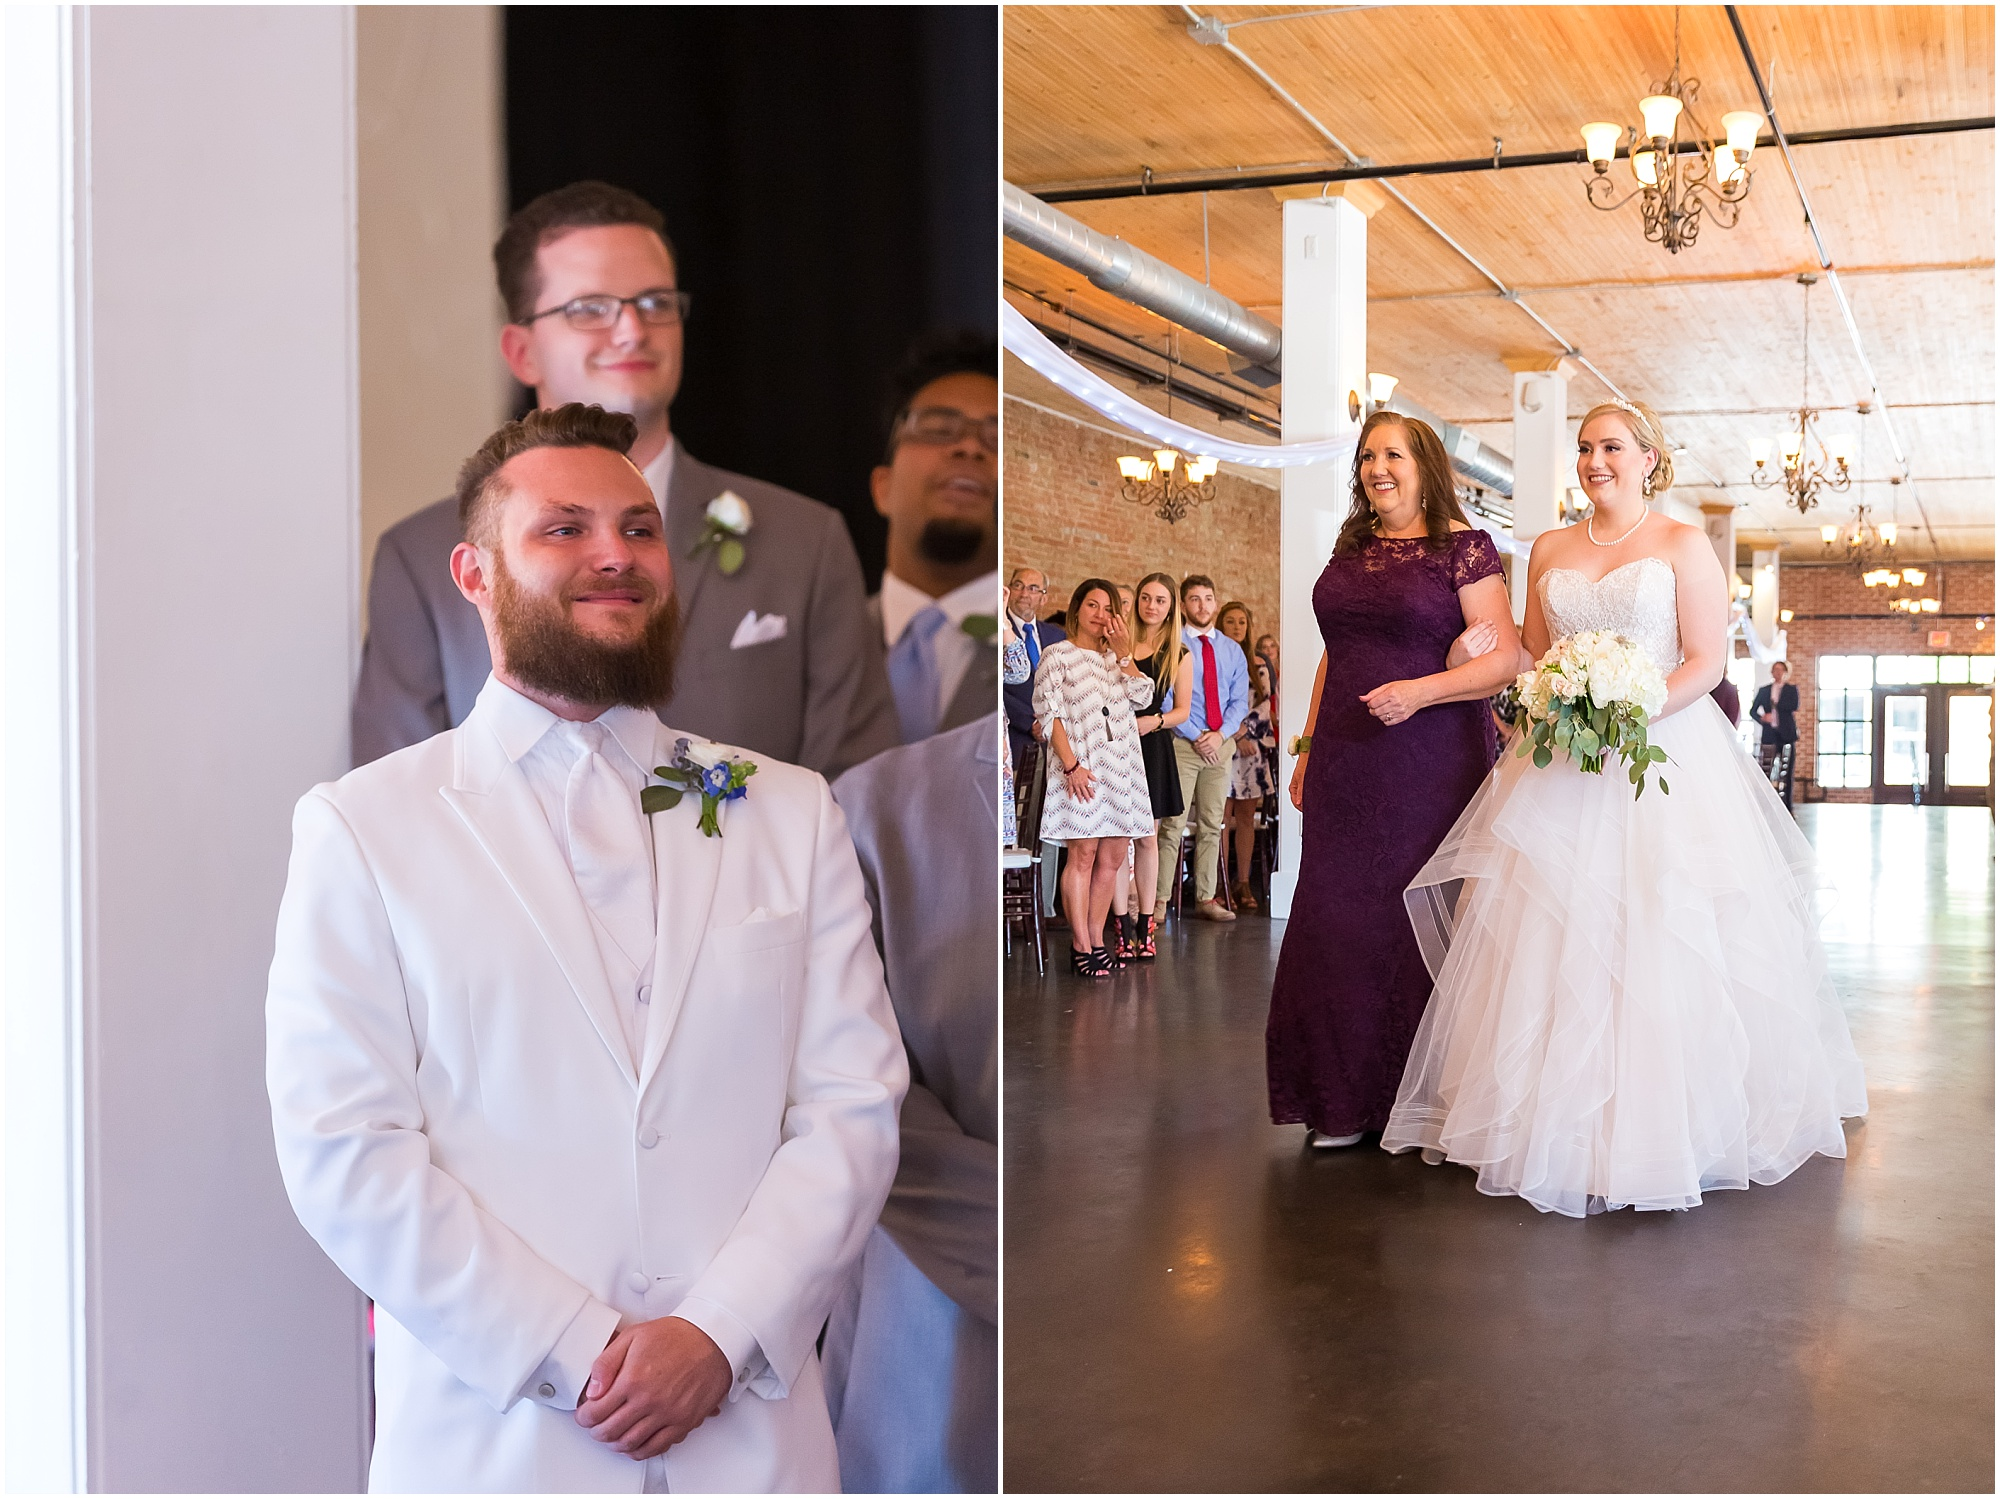 Groom smiles at bride coming down the aisle, downtown warehouse wedding in Waco, Texas - www.jasonandmelaina.com